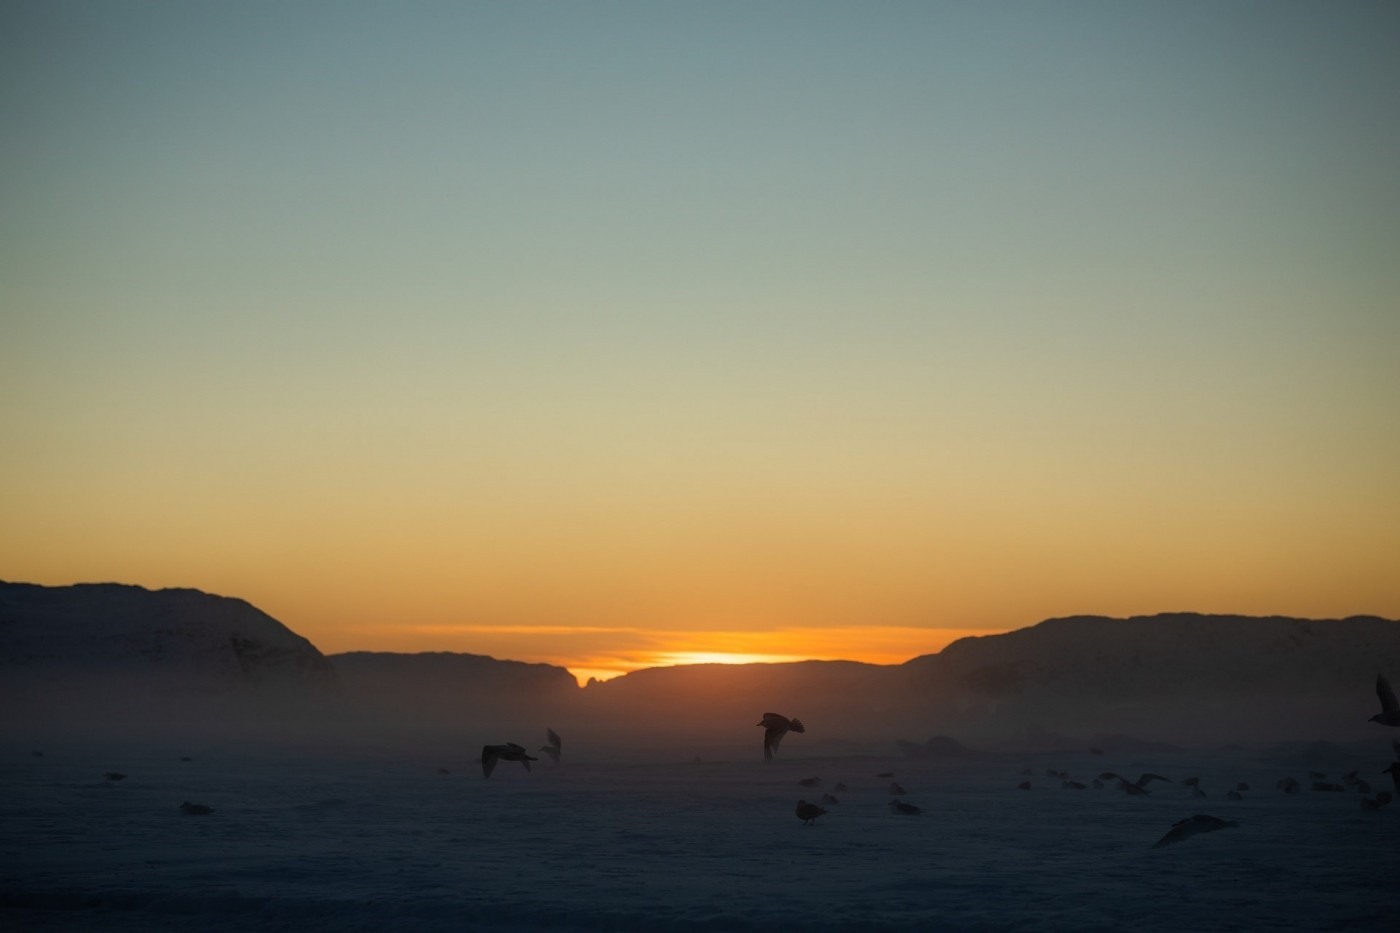 Photo by Aningaaq R Carlsen - Visit Greenland